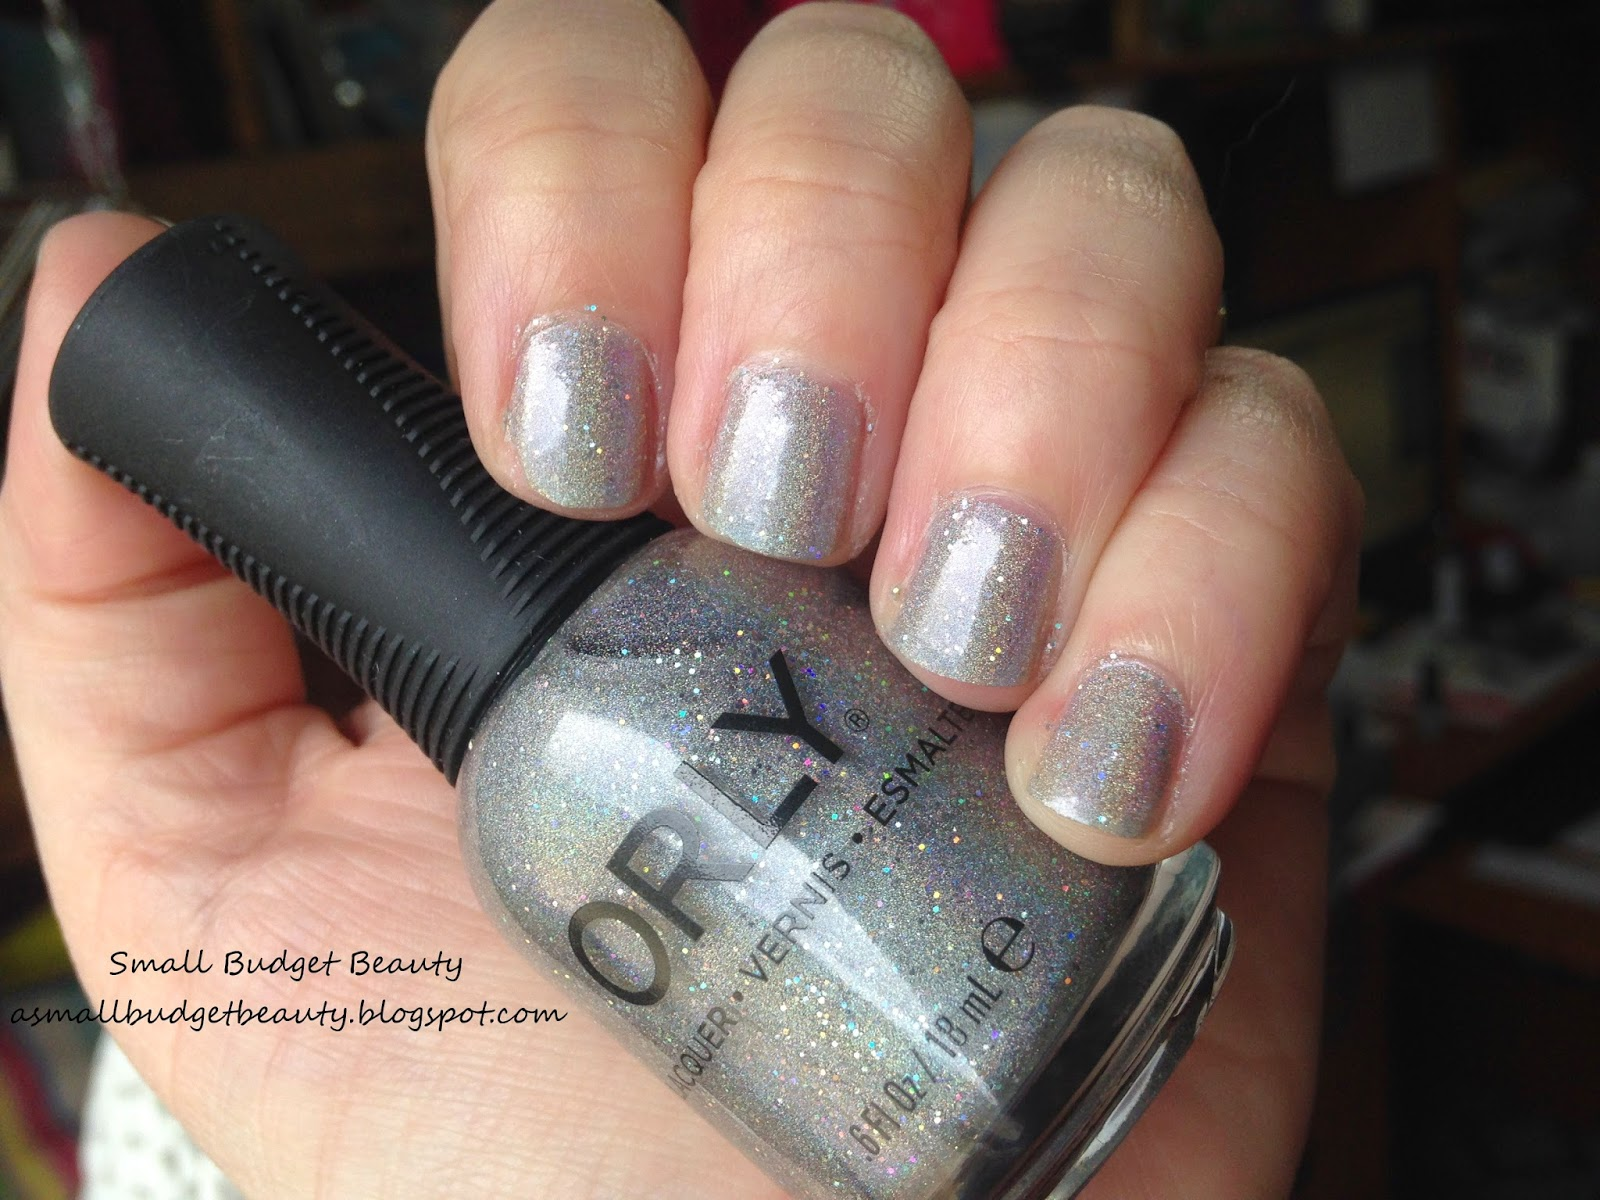 Small Budget Beauty: Orly Mirrorball